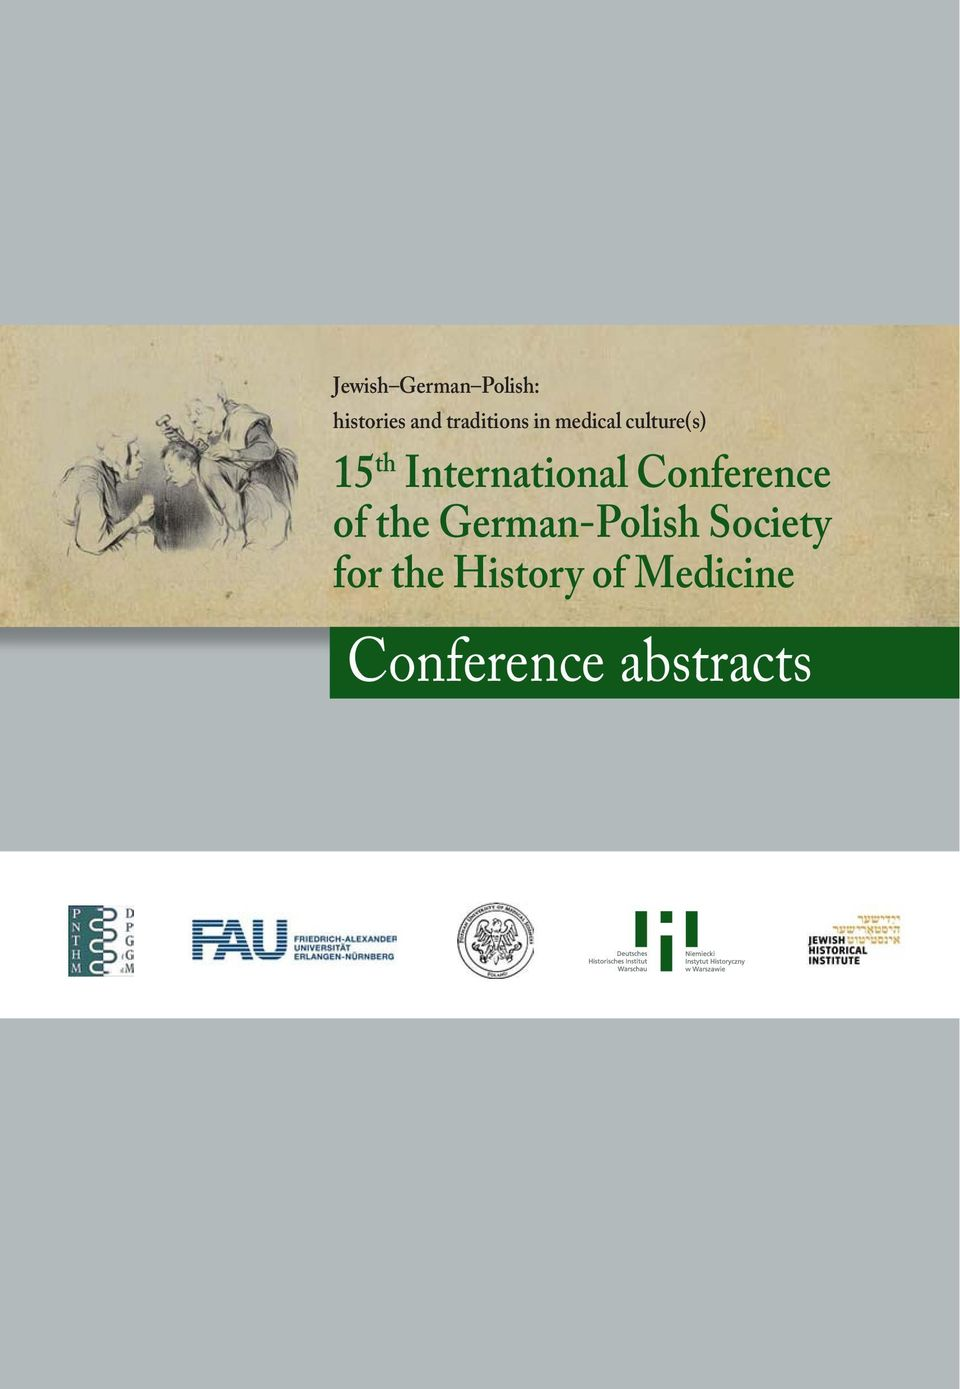 International Conference of the